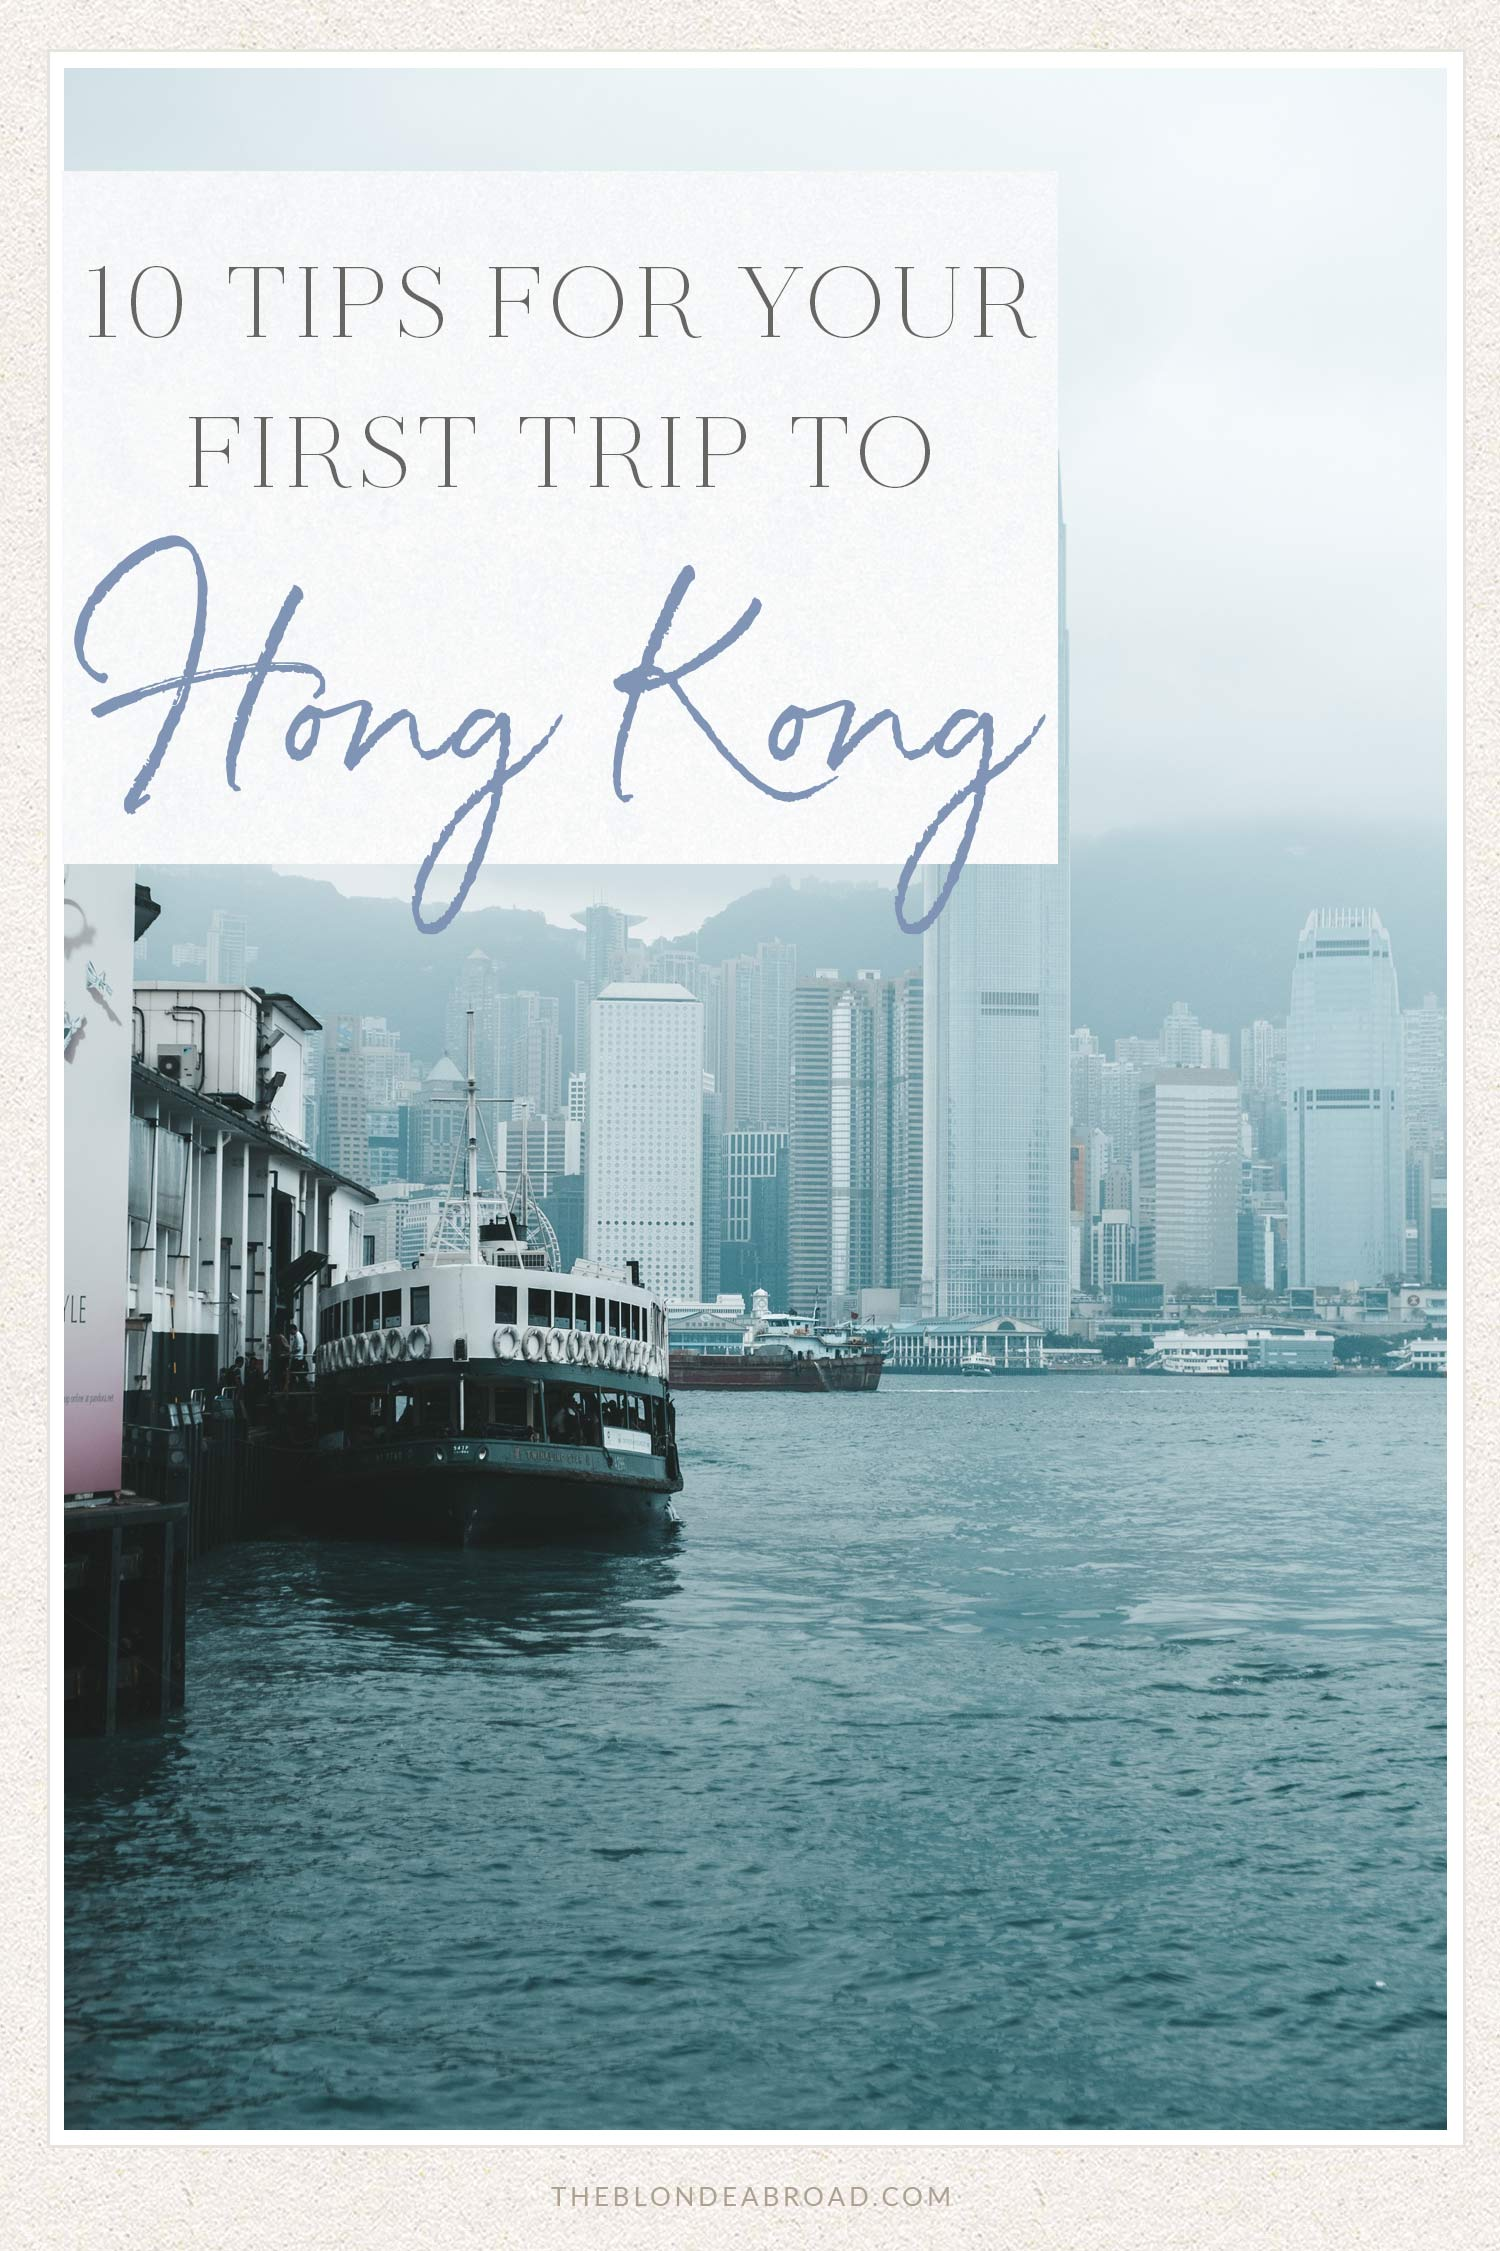 10 tips for your first trip to Hong Kong